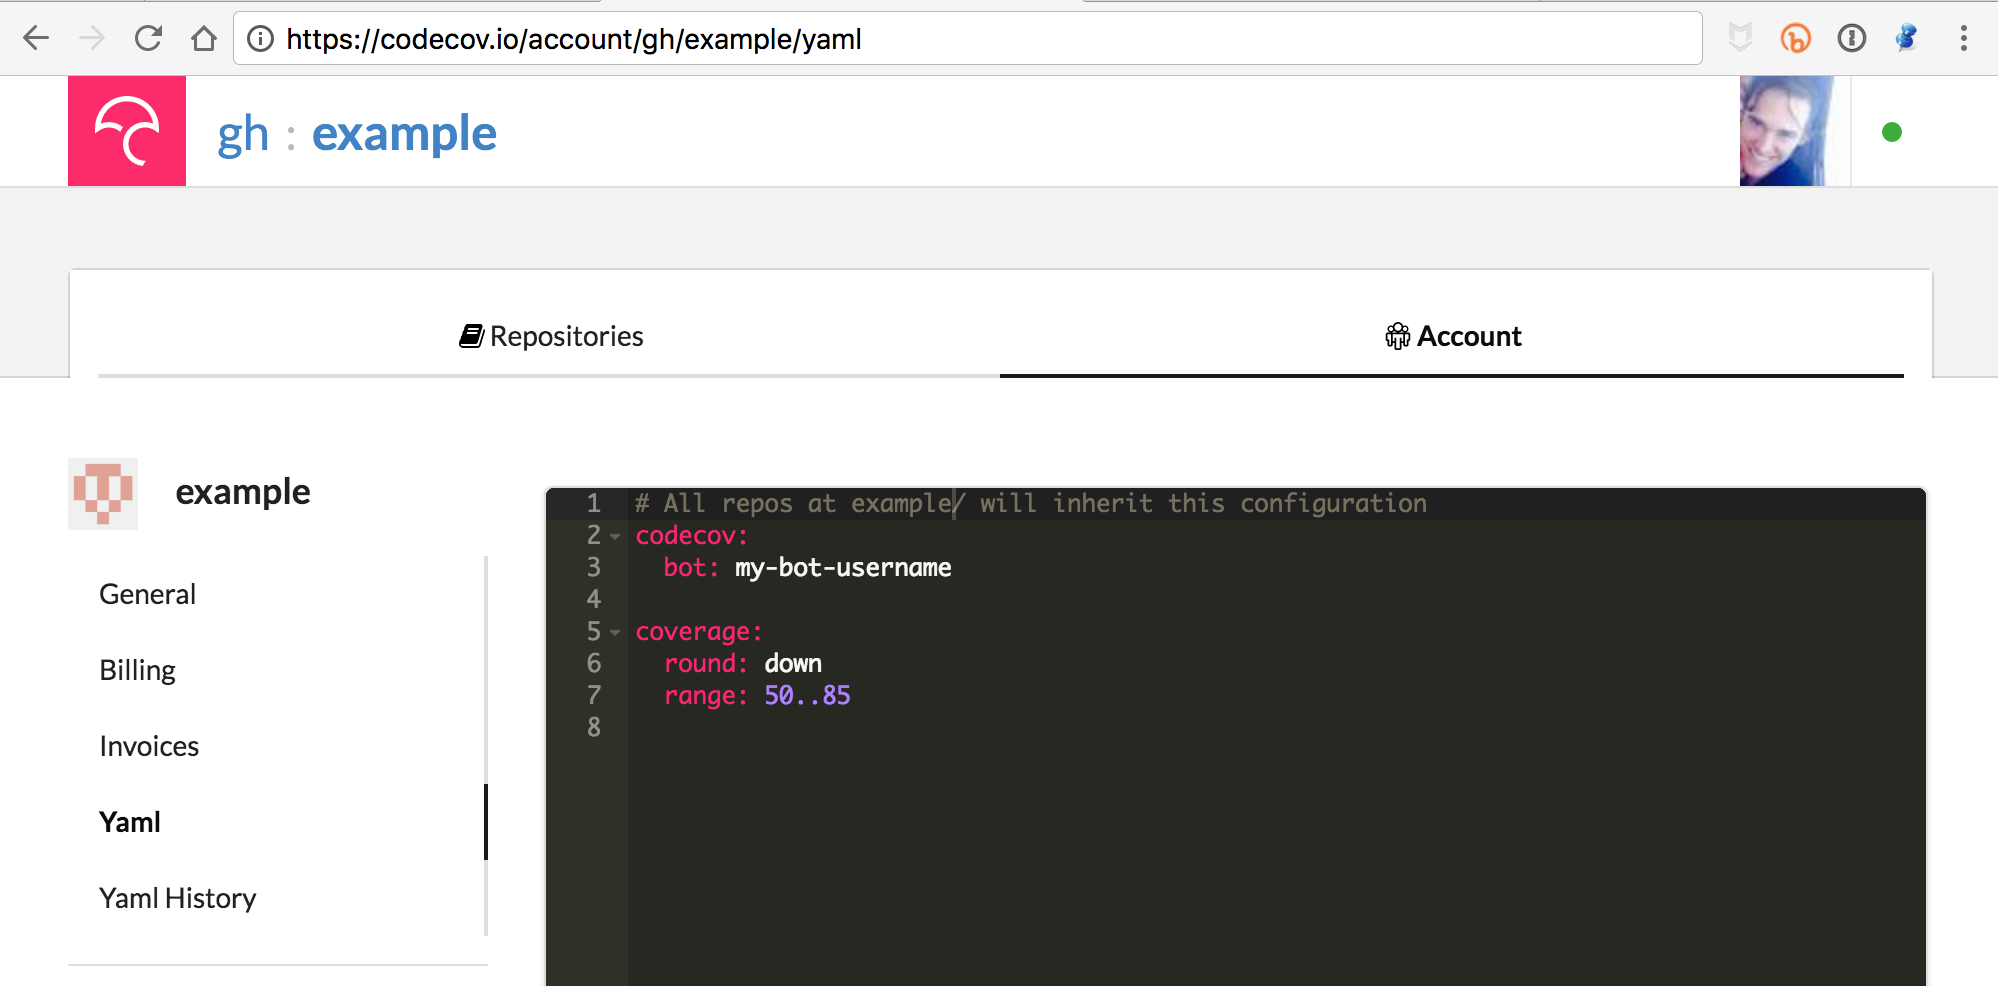 The team yaml (seen in the black box above) can be found in your account center `/account/gh/OWNER/yaml`.